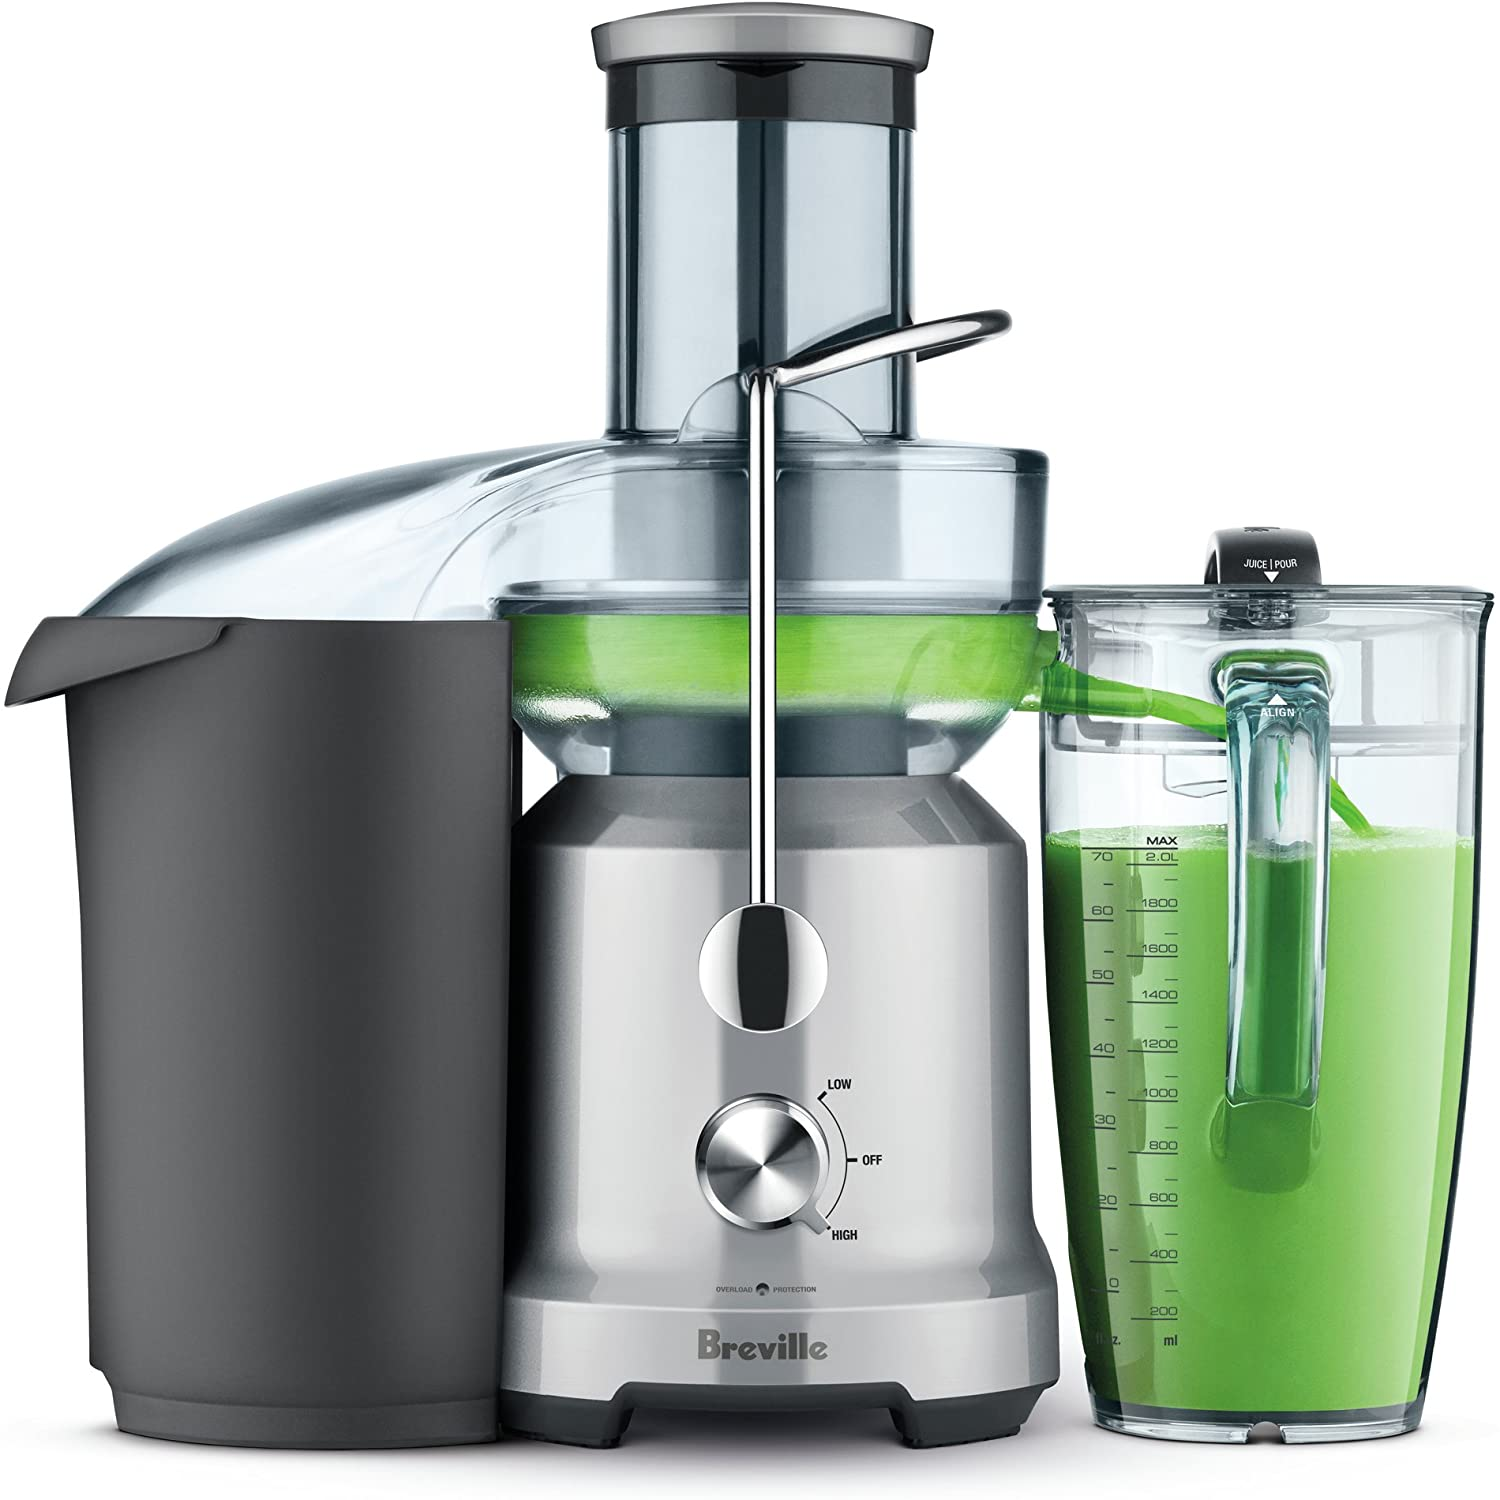 Top 10 Breville Juicers – Ultimate buying guide